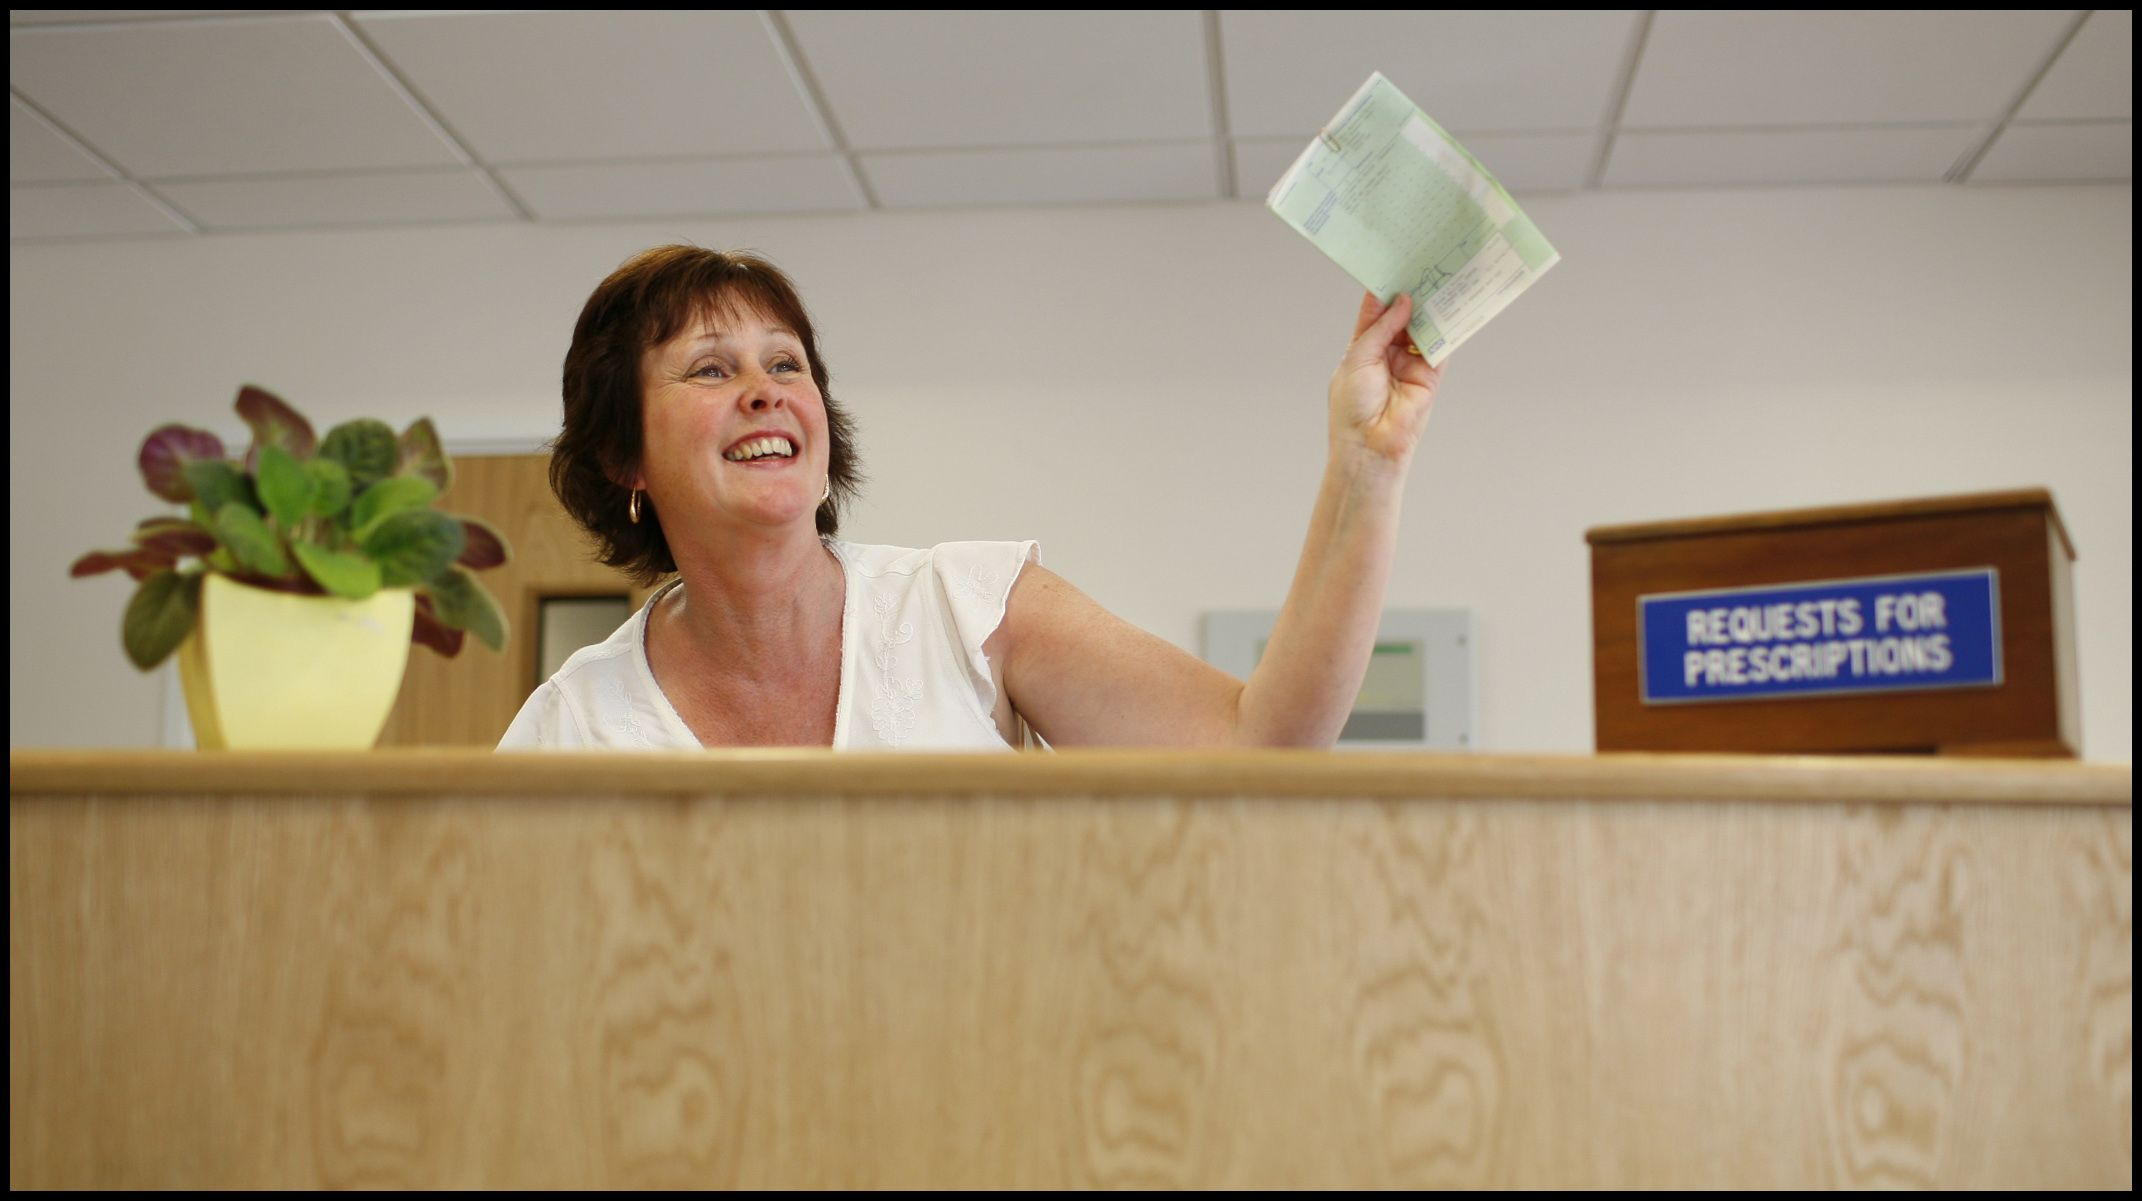 A receptionist at work at the Brune Medical Centre in